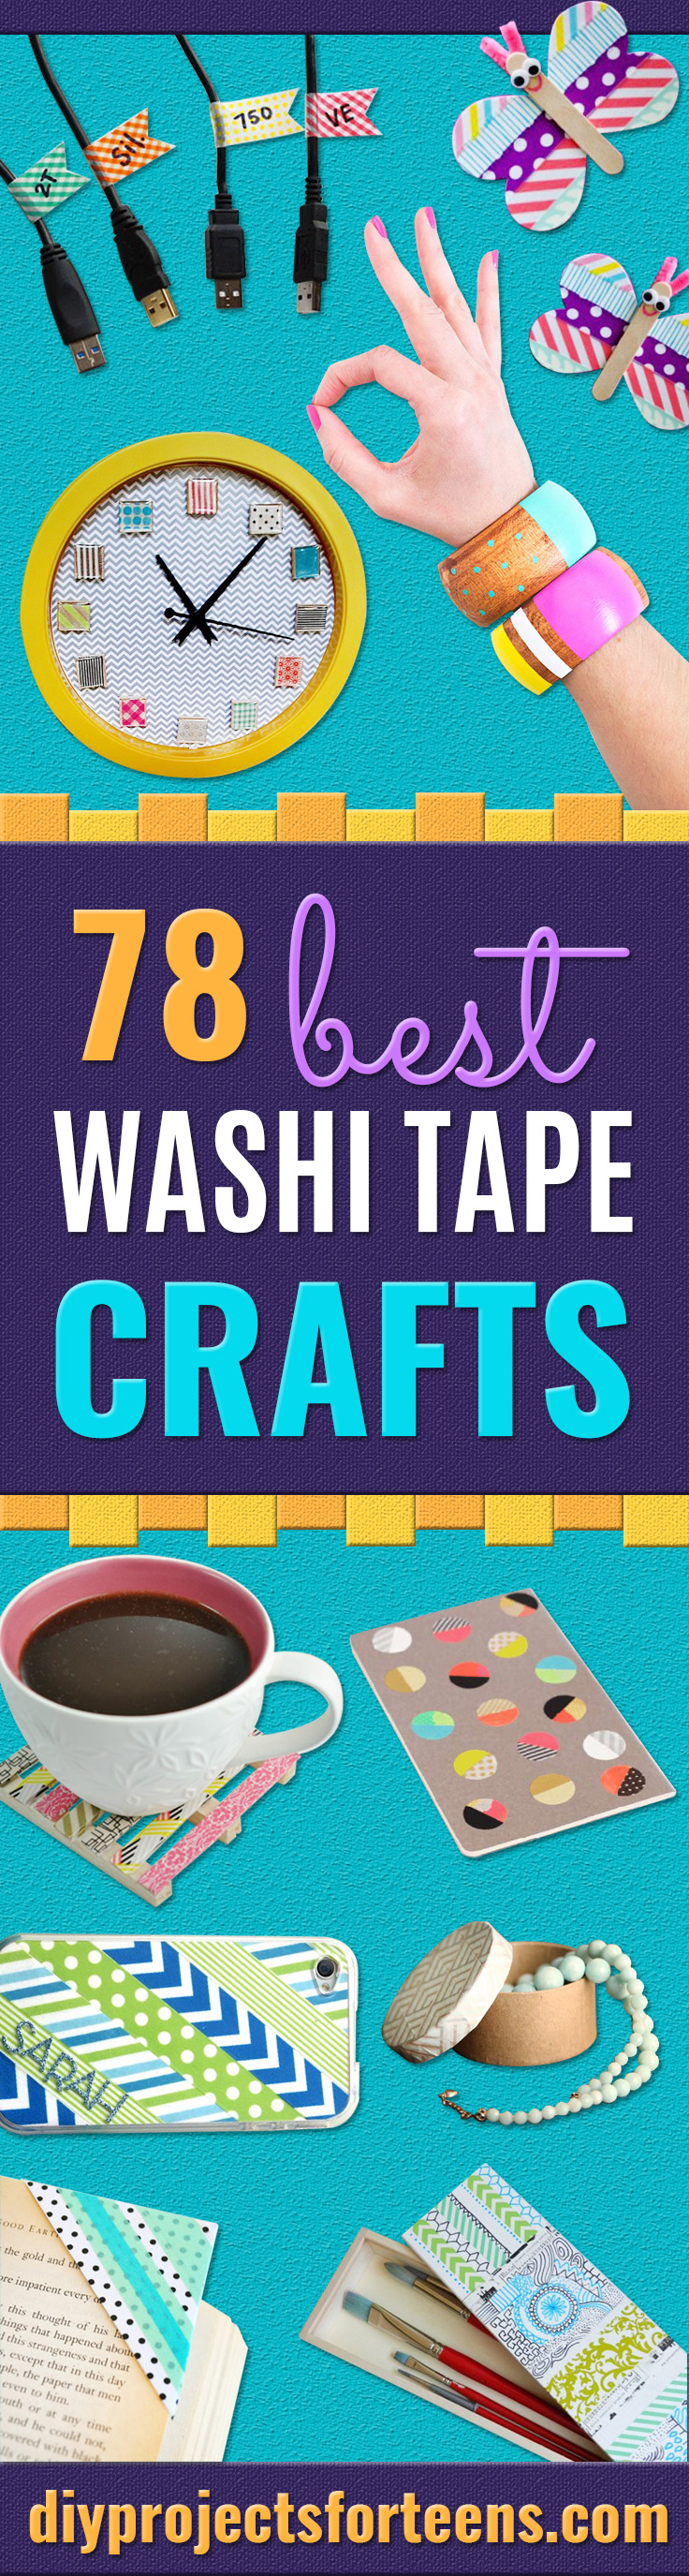 Washi Tape Crafts - Wall Art, Frames, Cards, Pencils, Room Decor and DIY Gifts, Back To School Supplies - Creative, Fun Craft Ideas for Teens, Tweens and Teenagers - Step by Step Tutorials and Instructions http://diyprojectsforteens.com/washi-tape-crafts